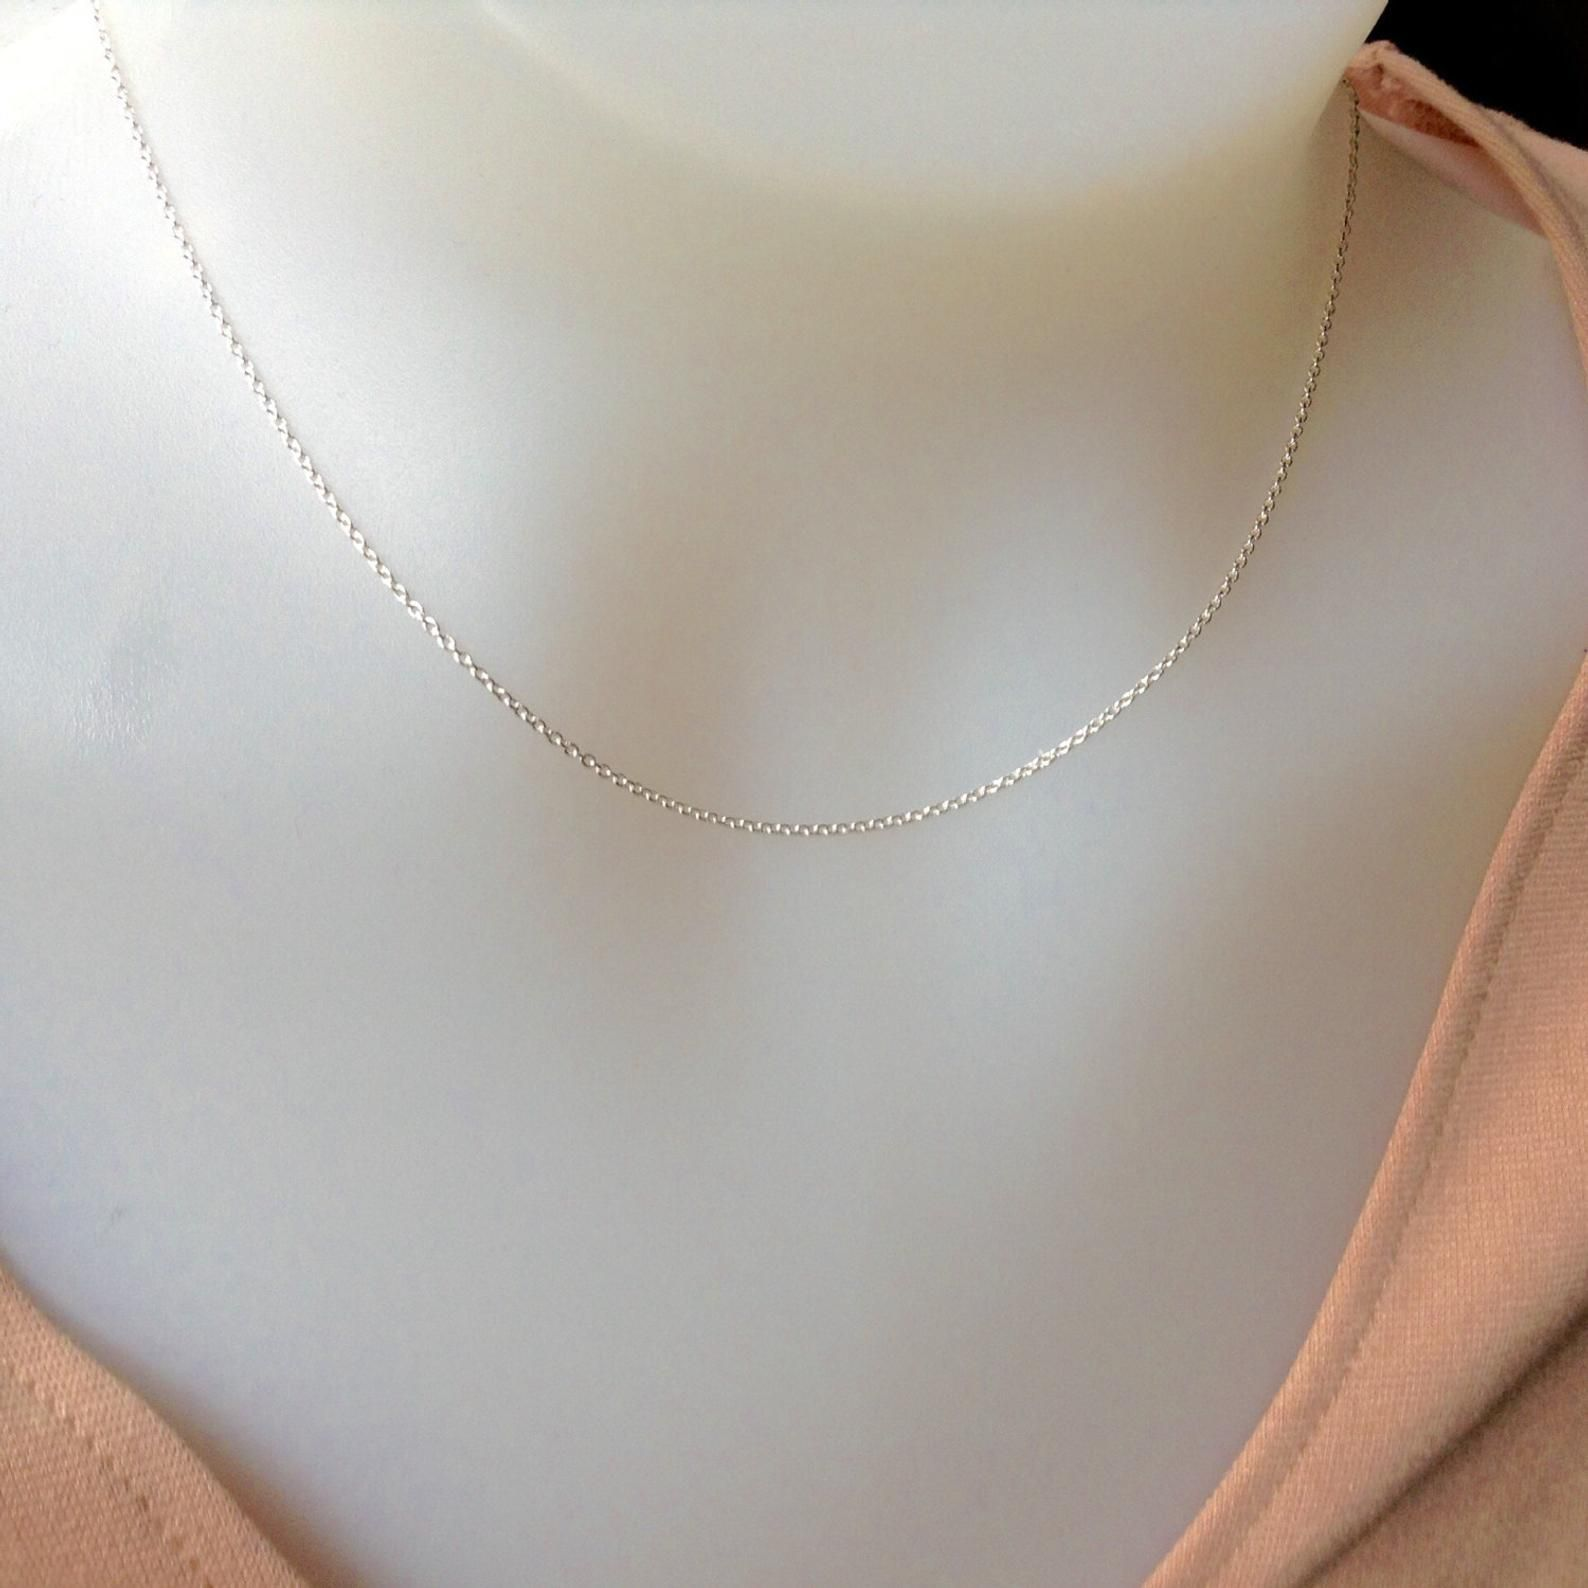 Sterling Silver Chain 16 Inch 1 2mm Sterling Silver Necklace Etsy Silver Necklace Sterling Silver Chains Sterling Silver Necklaces